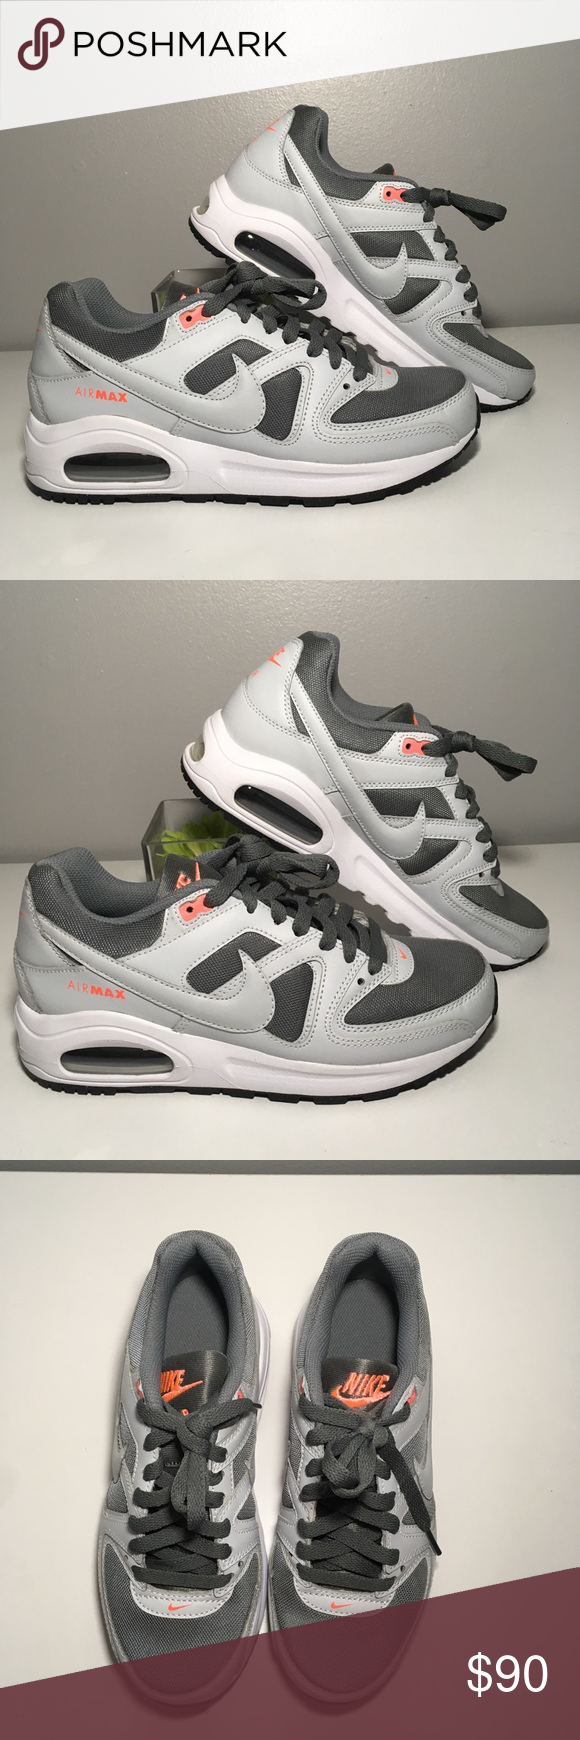 Nike Air Max Command Flex GS Cool Grey New without box nike